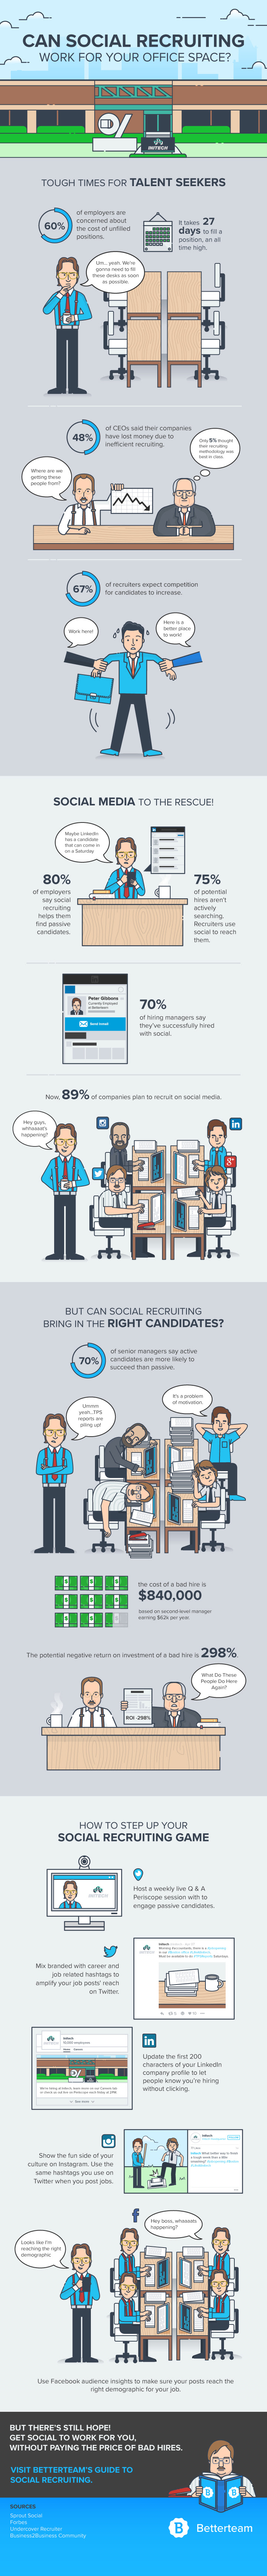 Can Social Recruiting Work for Your Office Space?